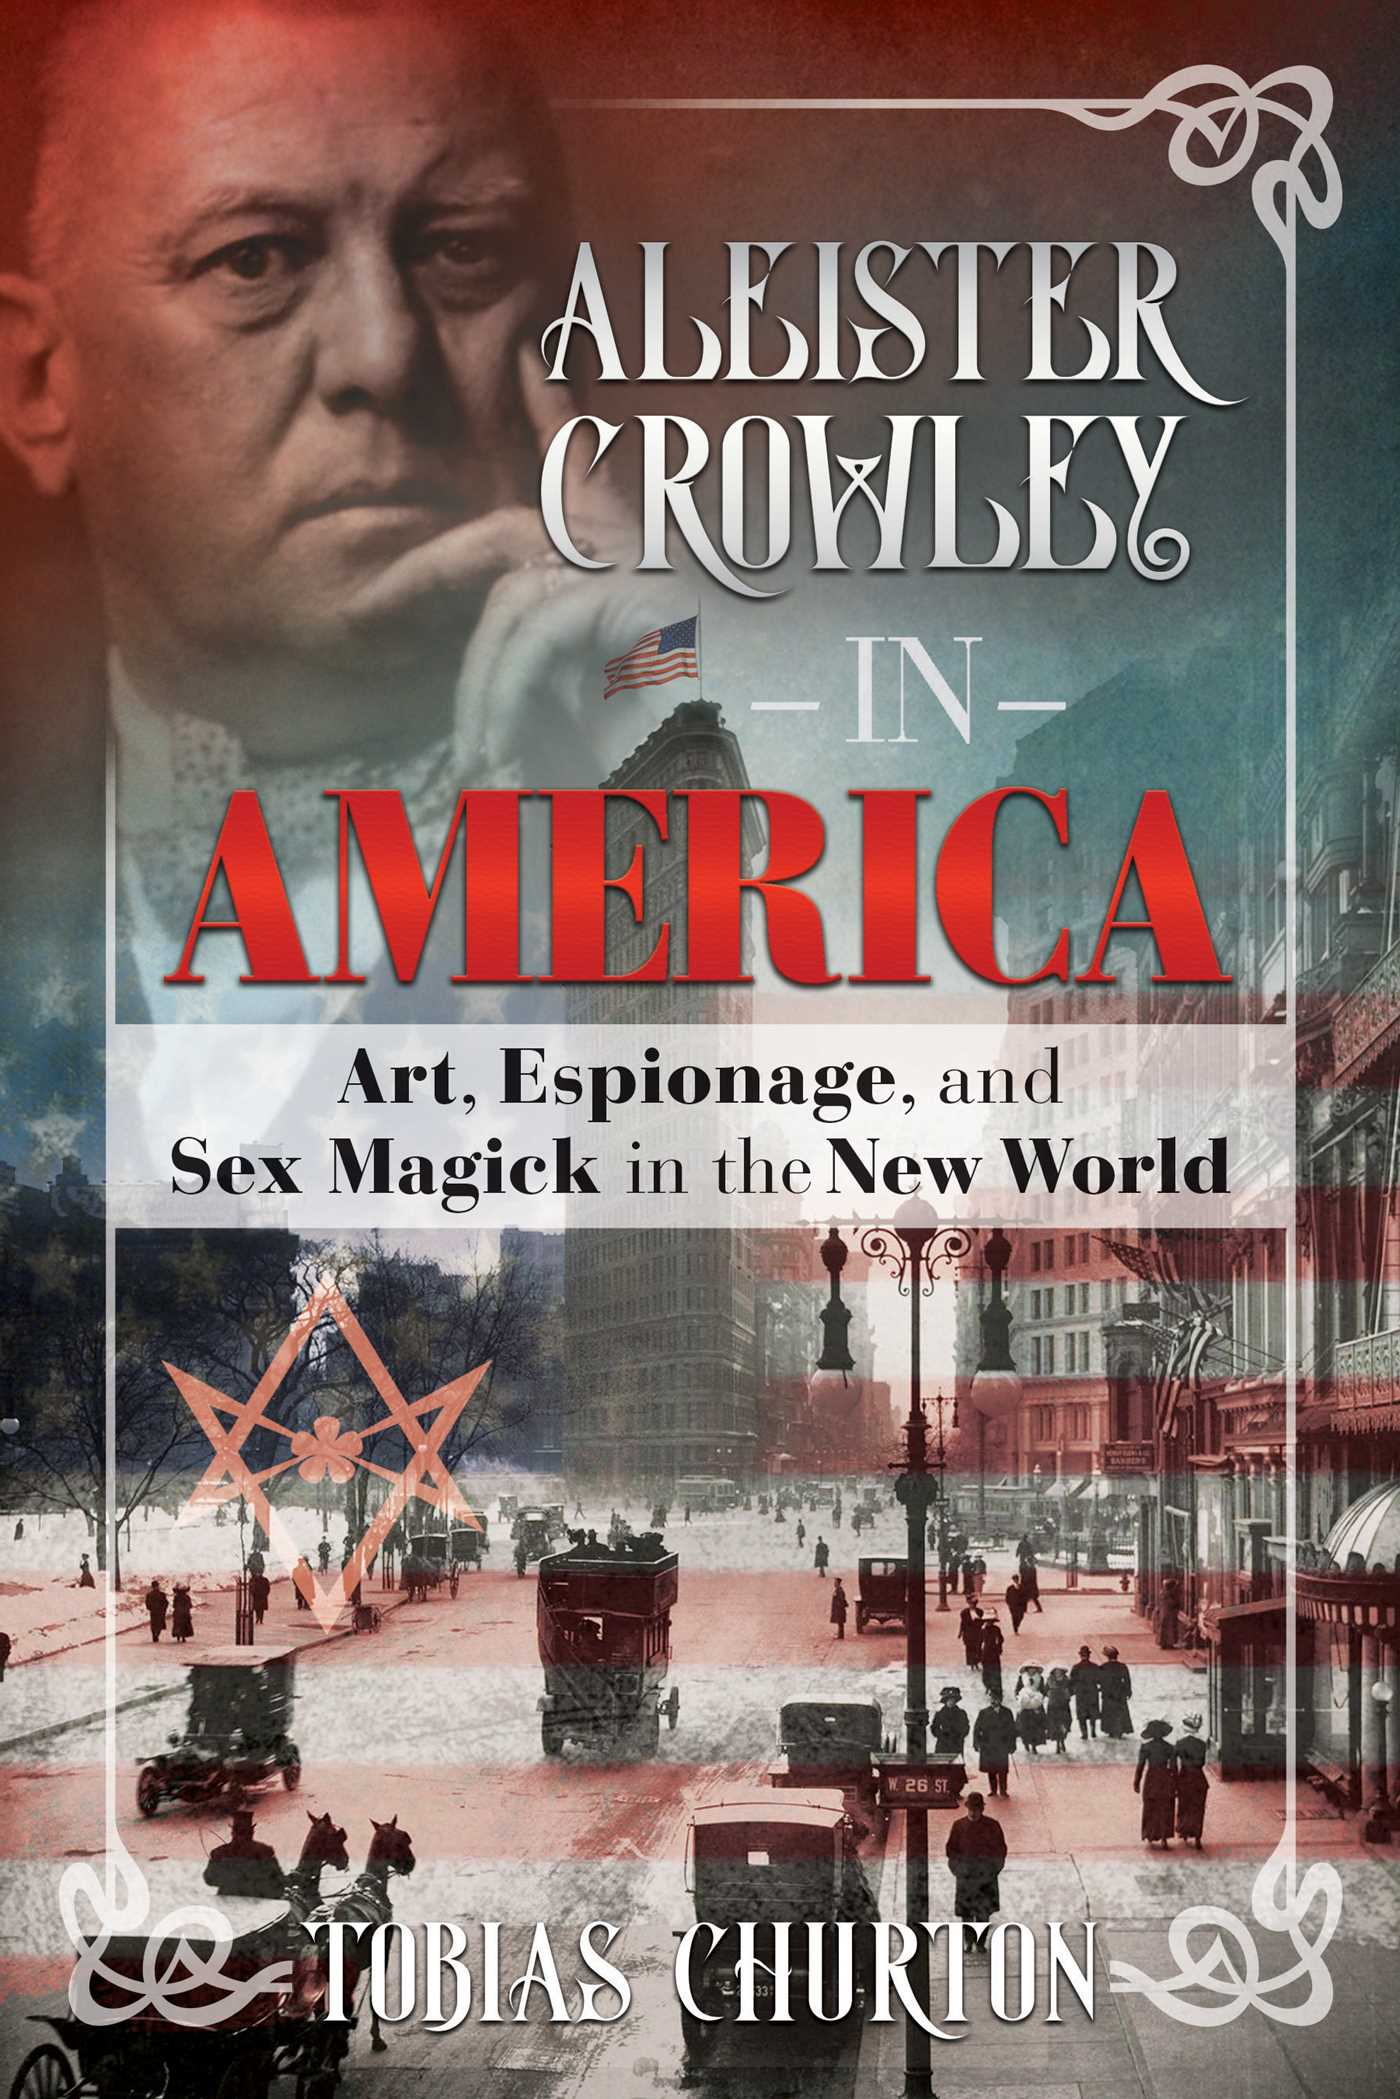 Aleister crowley in america 9781620556306 hr